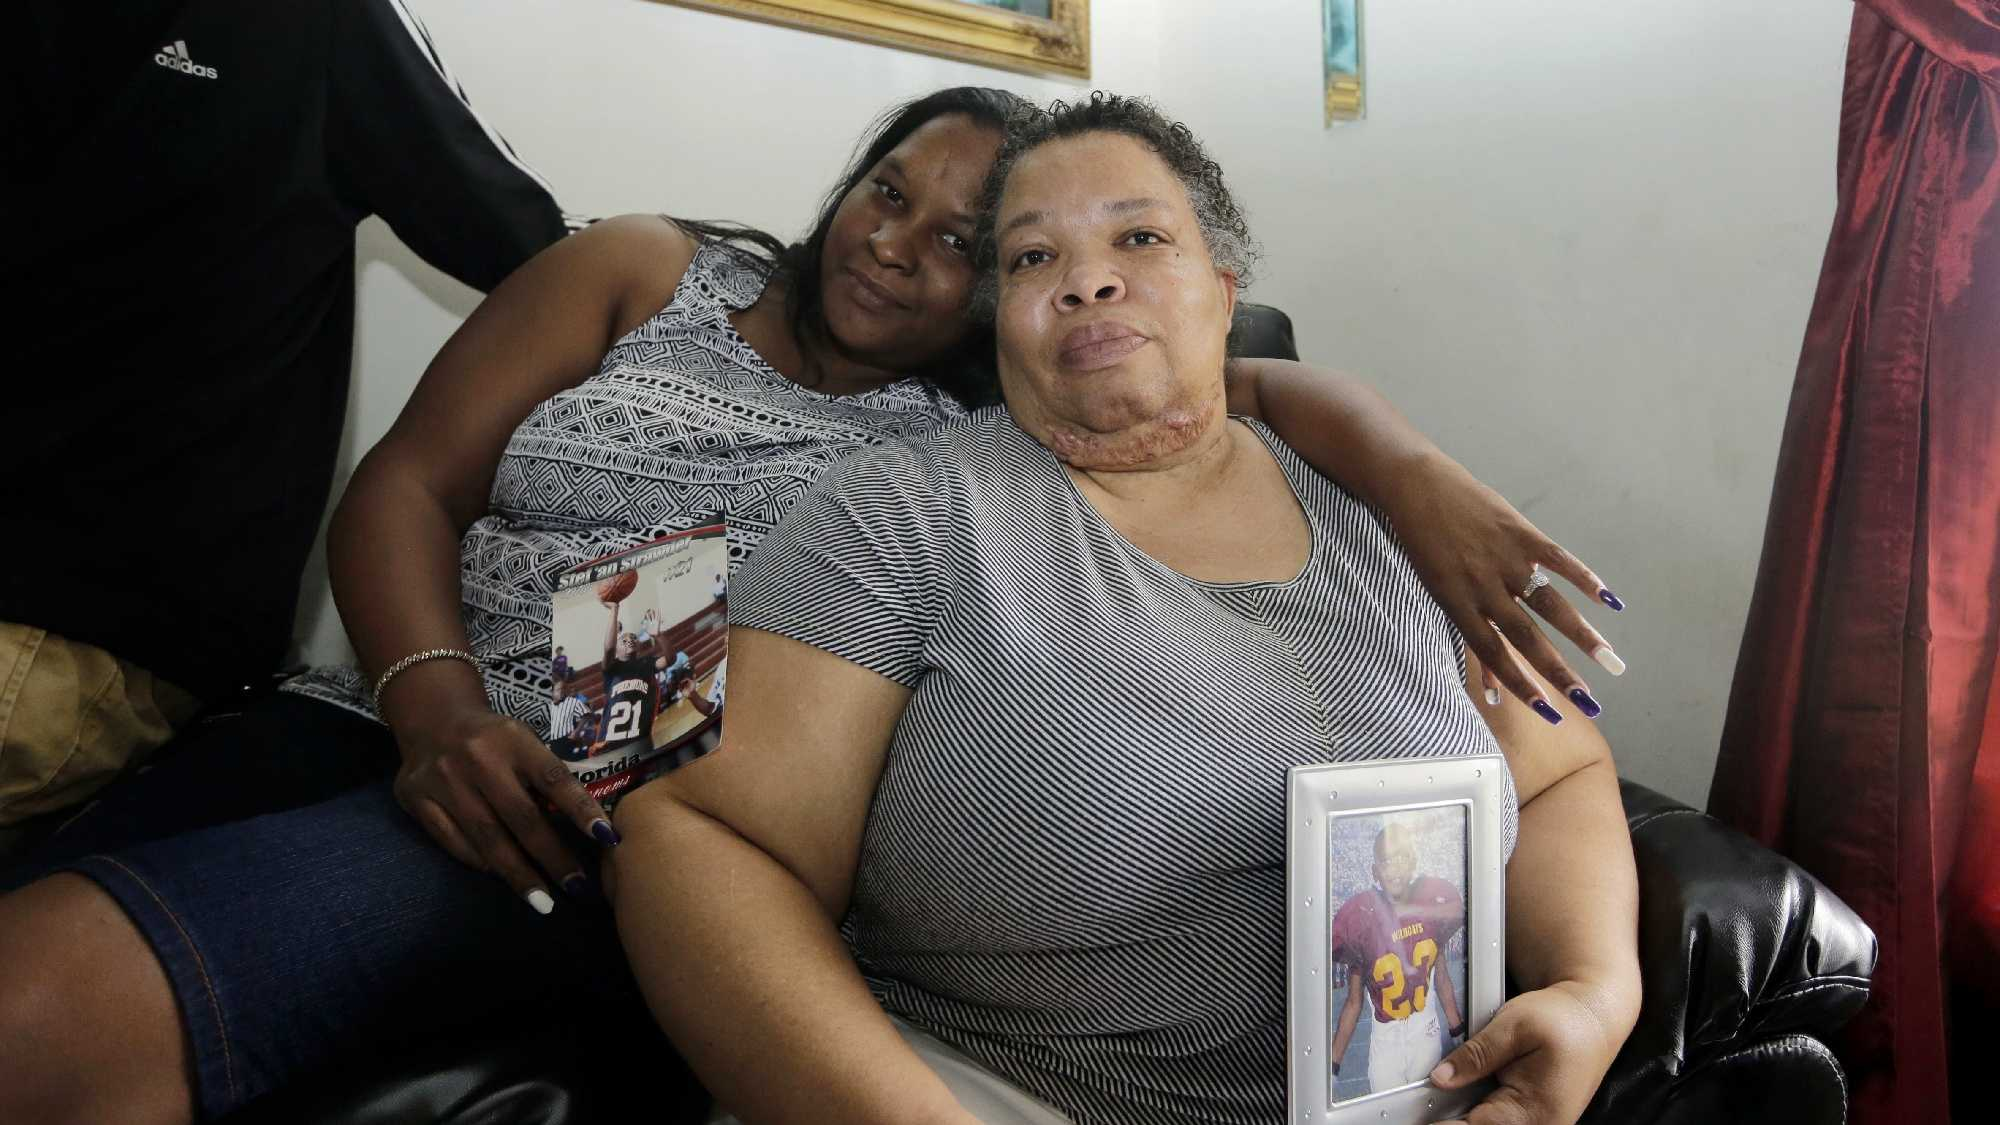 Stephanie White, right, holds a photograph of her son Stef'an Strawder during an interview in her home in Lehigh Acres, Fla., Monday, July 25, 2016. Strawder, 18, was killed in the deadly shooting outside the Club Blu nightclub in Fort Myers, Fla., Monday. Police said the gunfire, which erupted at a swimsuit-themed party for teens, was not an act of terrorism. At left is Kasey Jones. (AP Photo/Lynne Sladky)